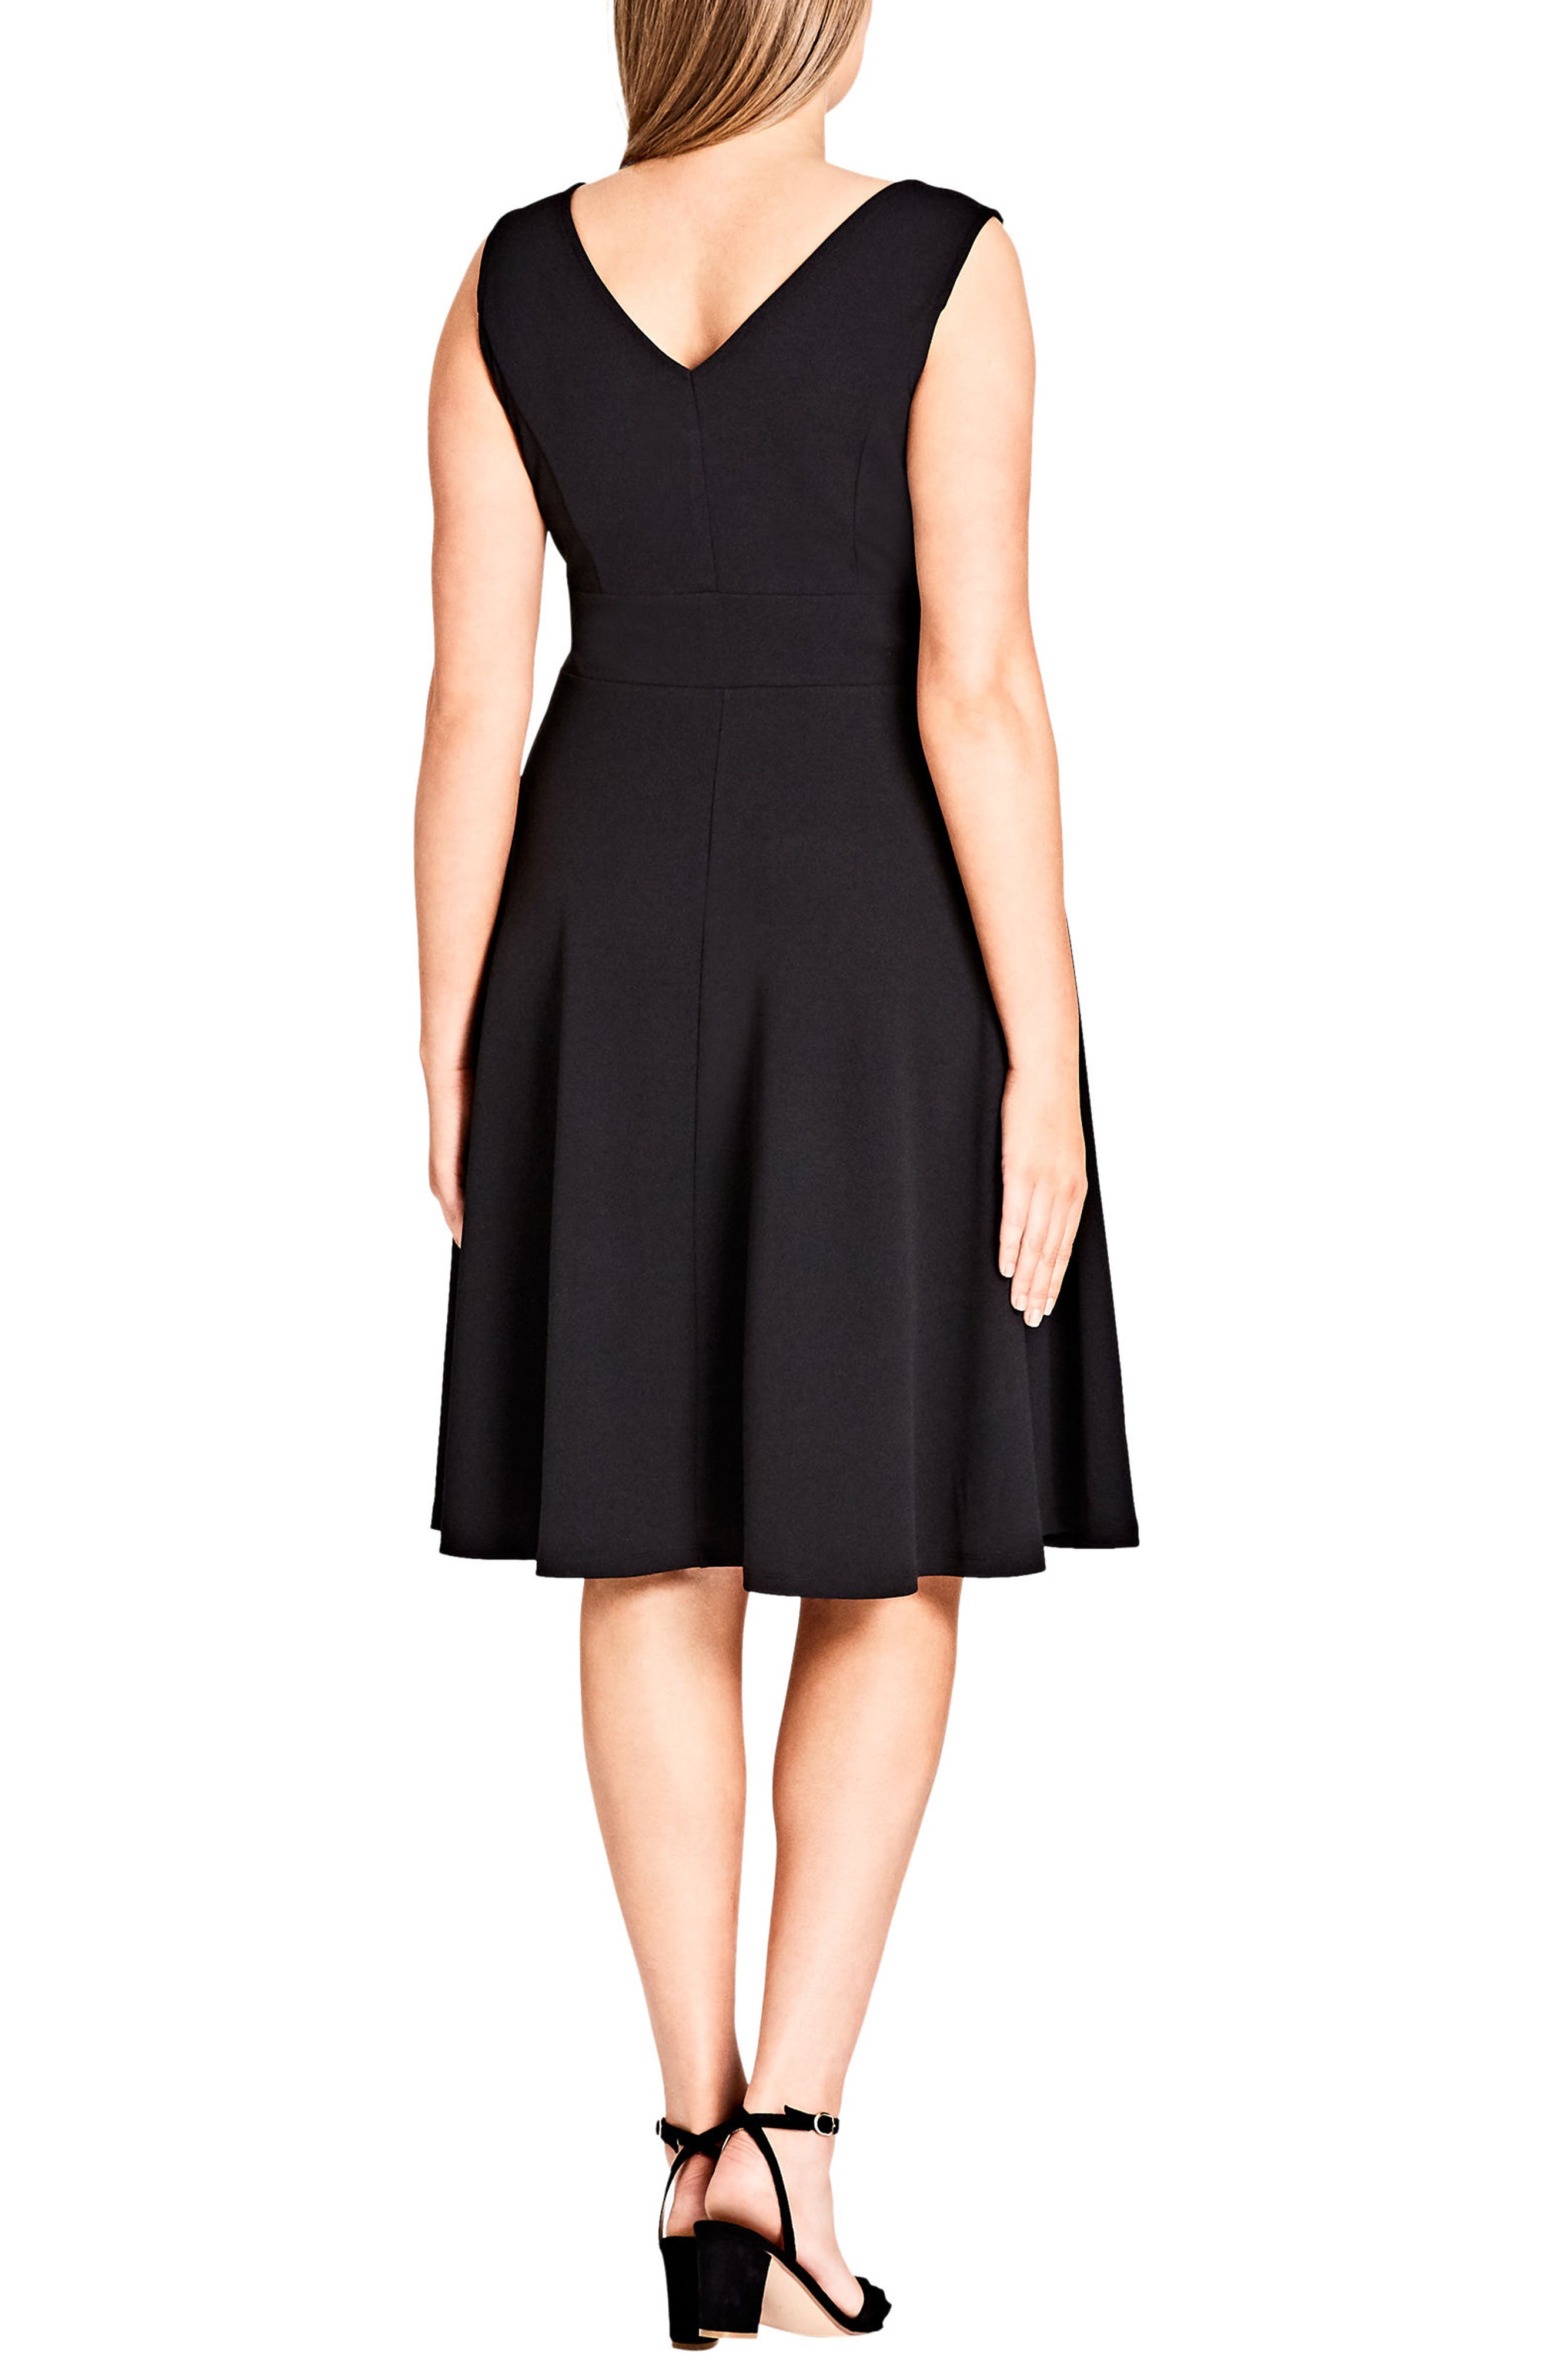 CITY CHIC,                             Fit & Flare Dress,                             Alternate thumbnail 2, color,                             011